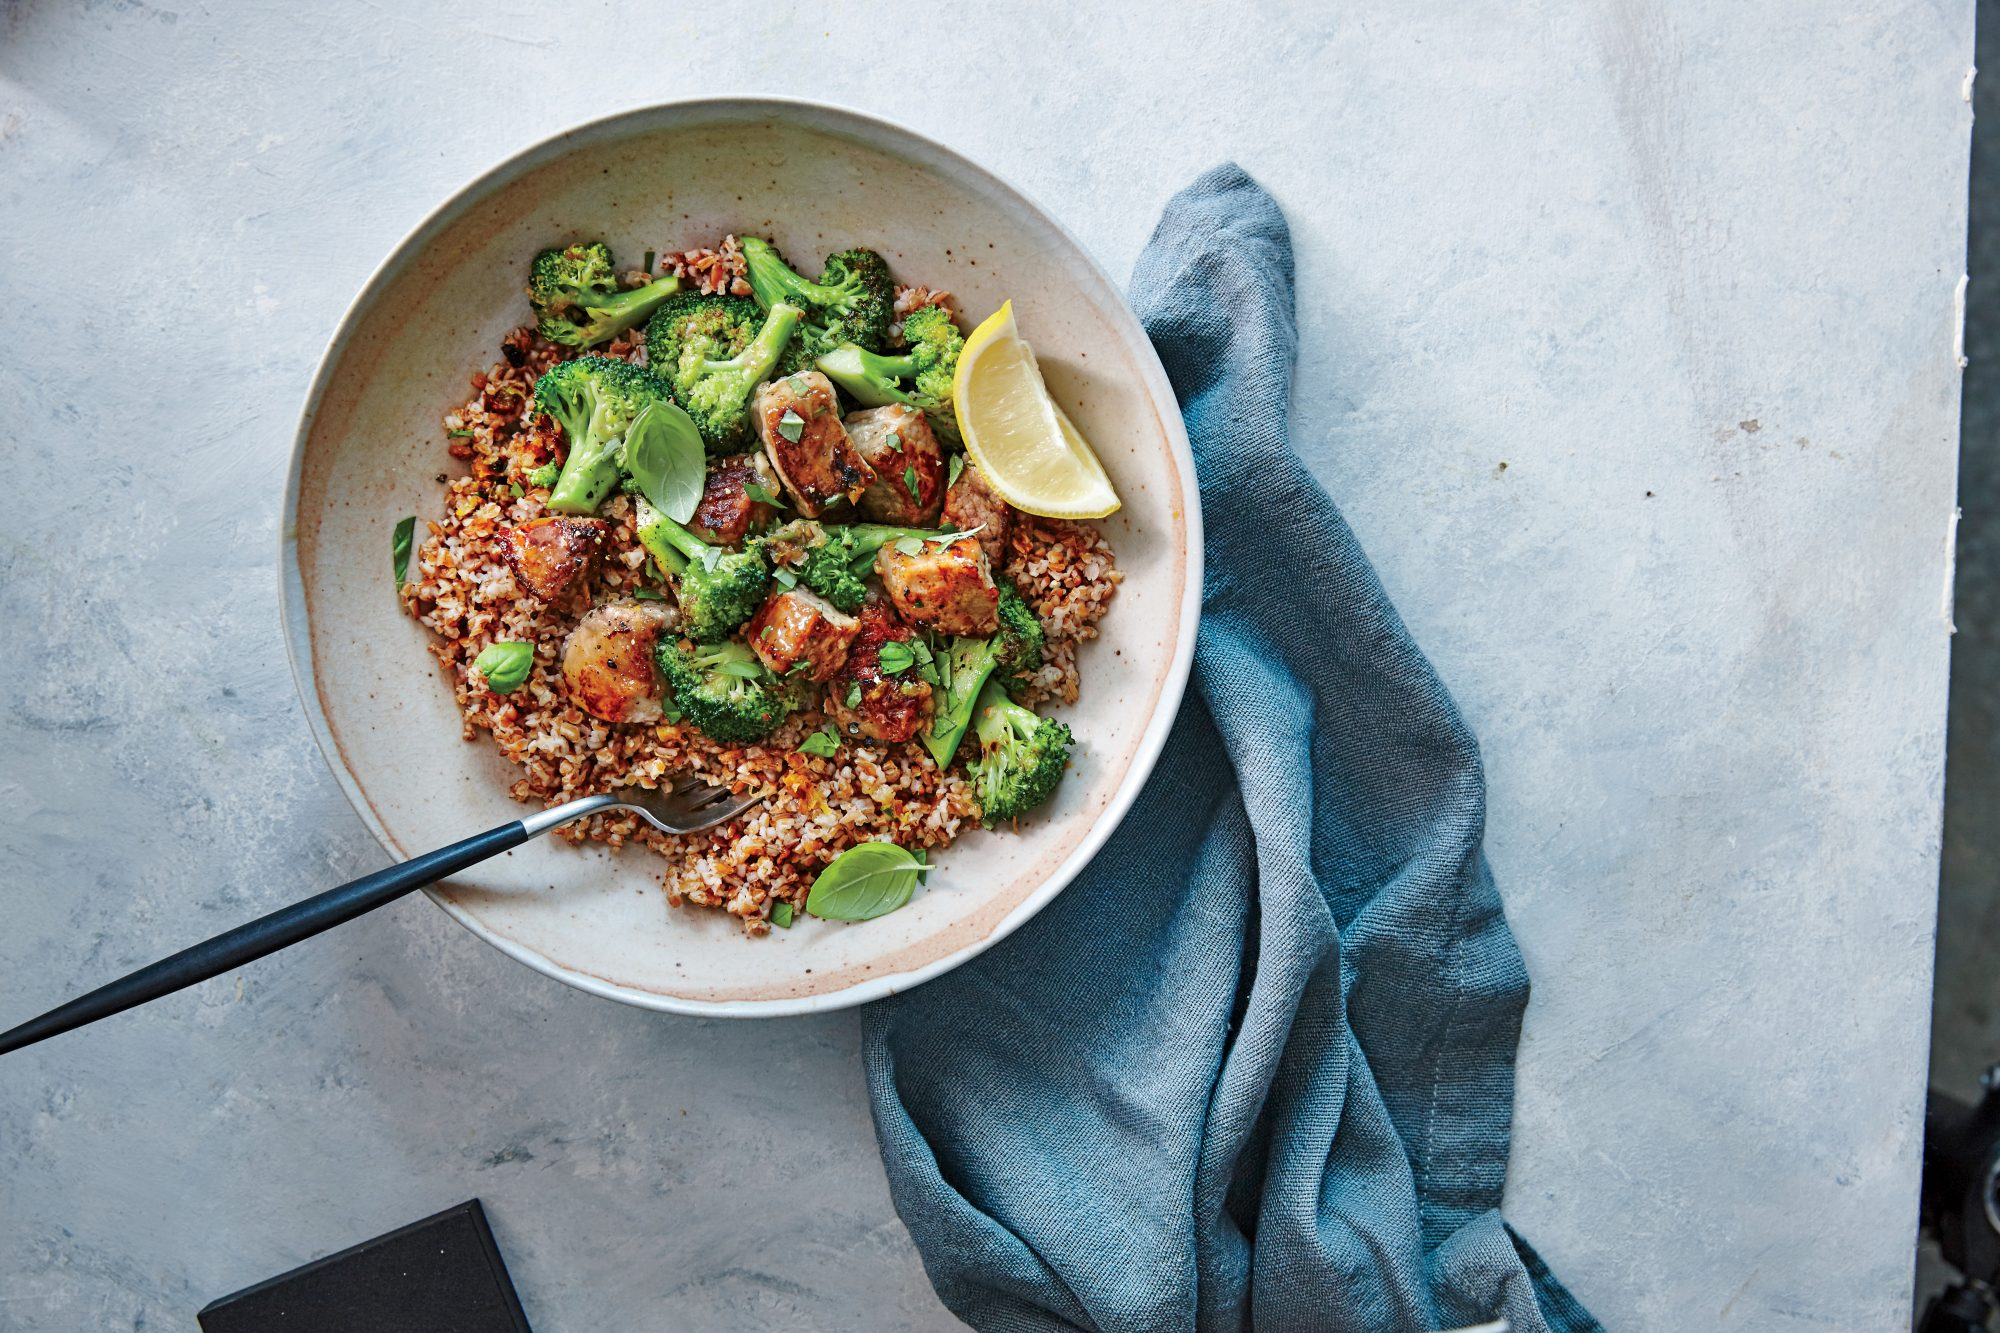 Lemon Garlic Pork and Broccoli Bulgur Bowl